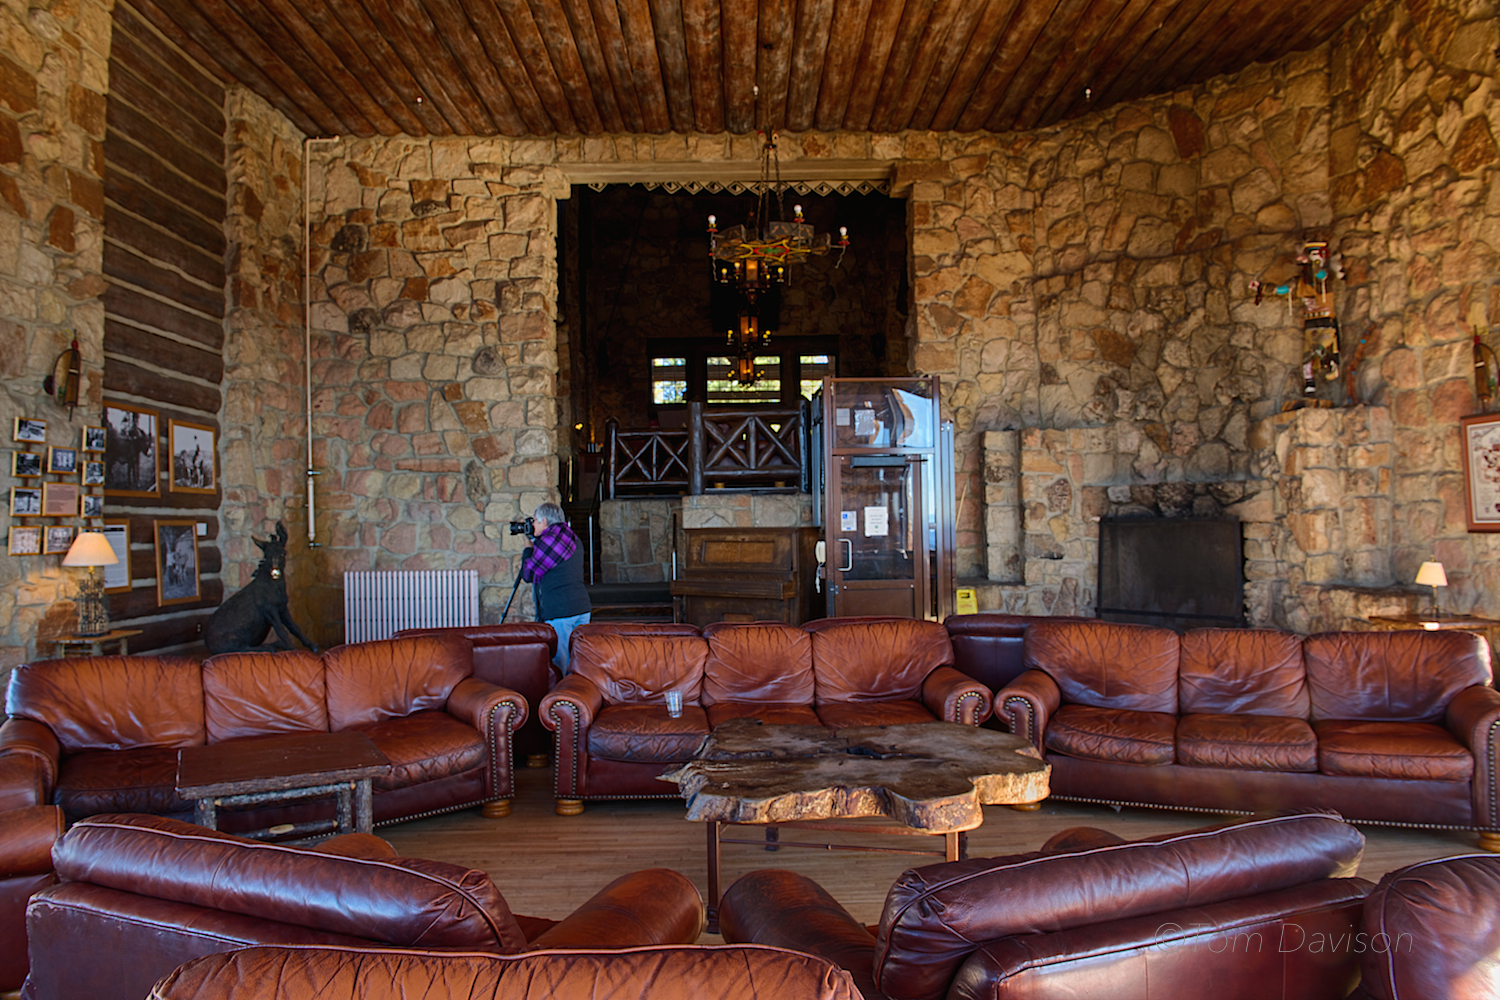 The Lodge reminded me of another era's interpretation of luxury. No, I did not intend to get in Tom's shot. I was there first (I think). Behind Tom were huge windows offering up a panoramic view of the Canyon.